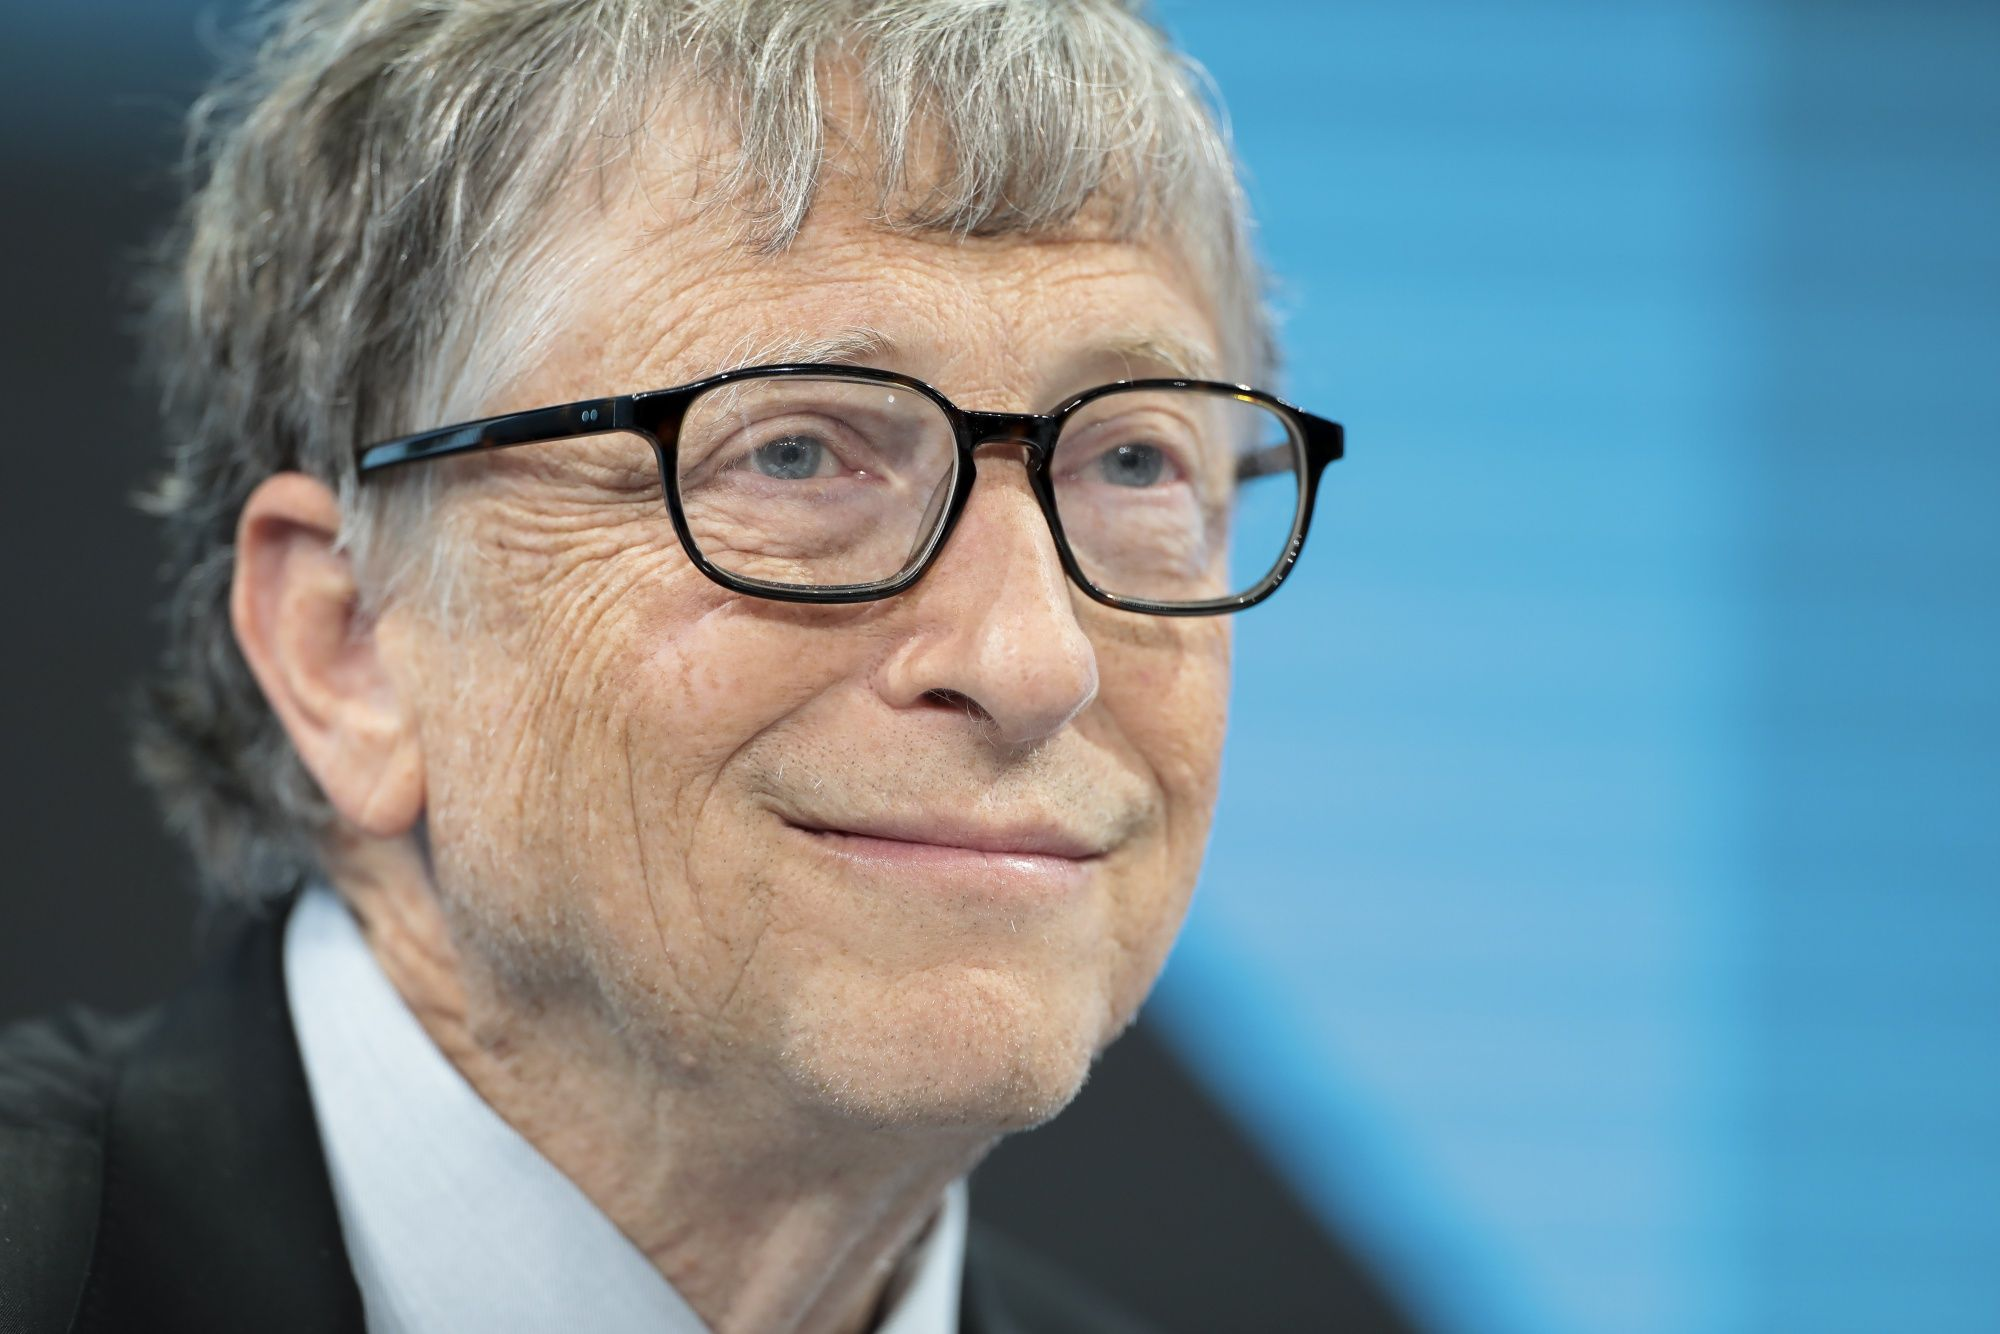 Bill Gates is world's richest person again, surpasses Amazon CEO Jeff Bezos